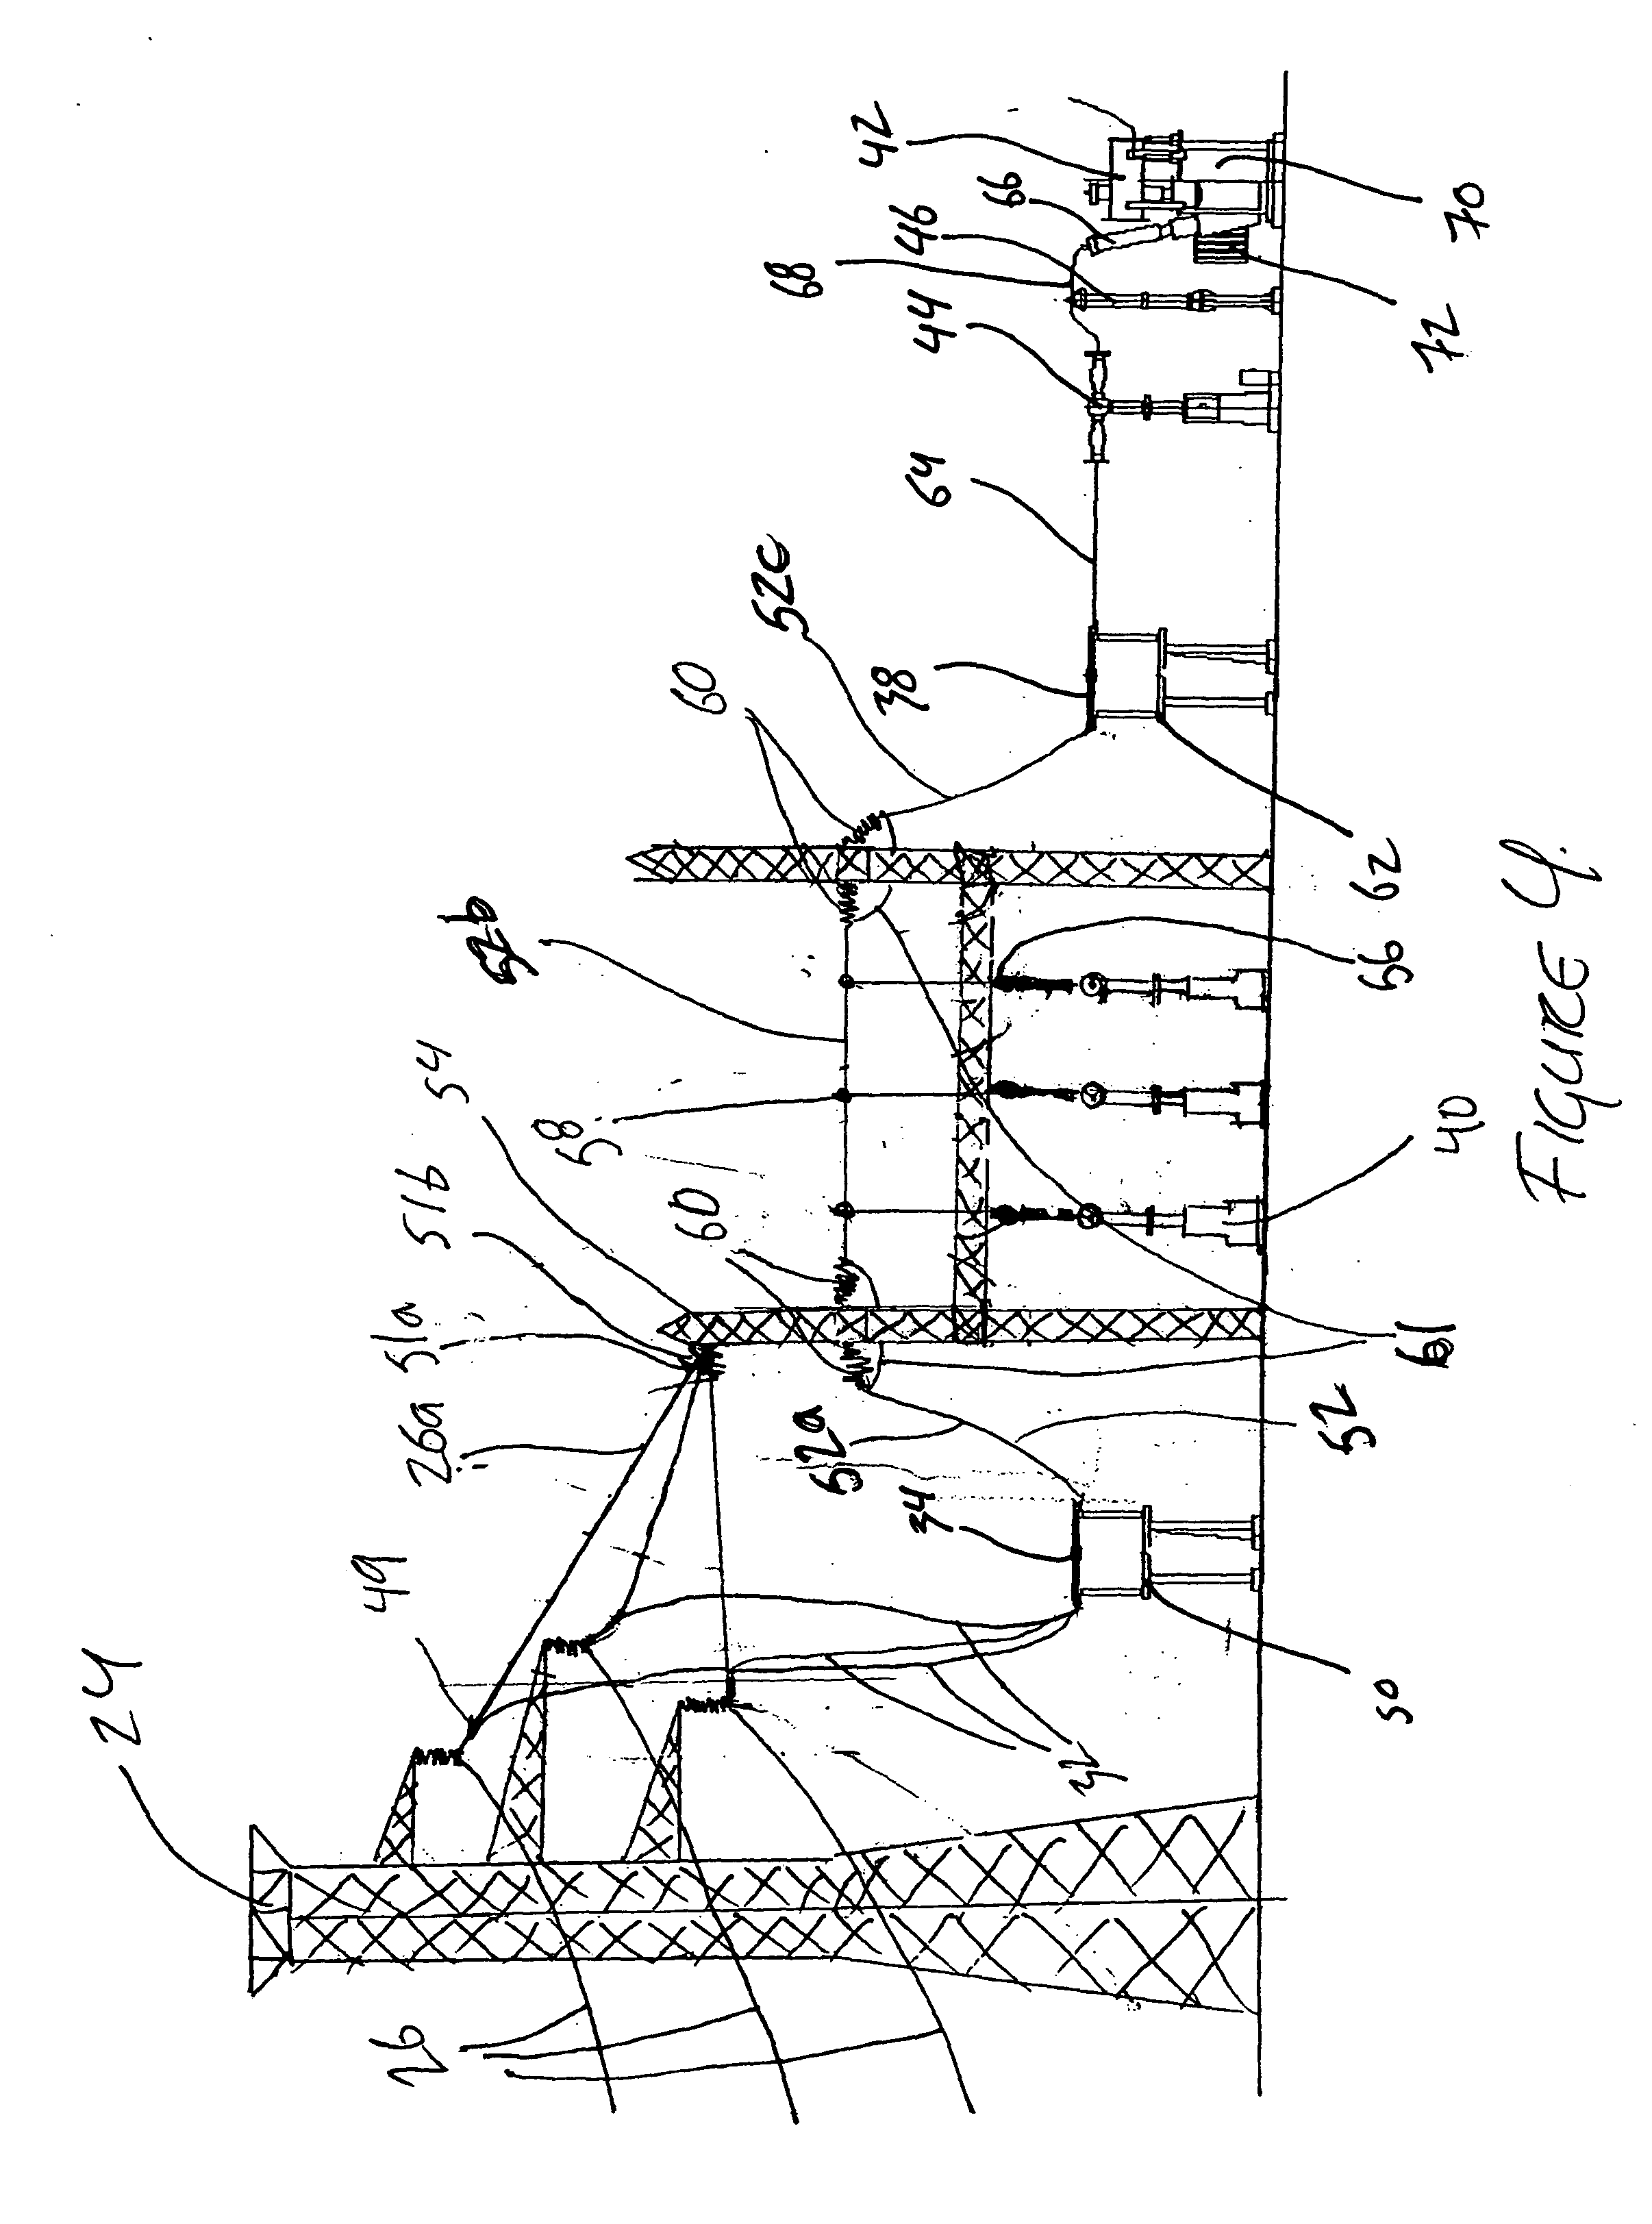 Patent Drawing  sc 1 st  Google : substation wiring diagram - yogabreezes.com